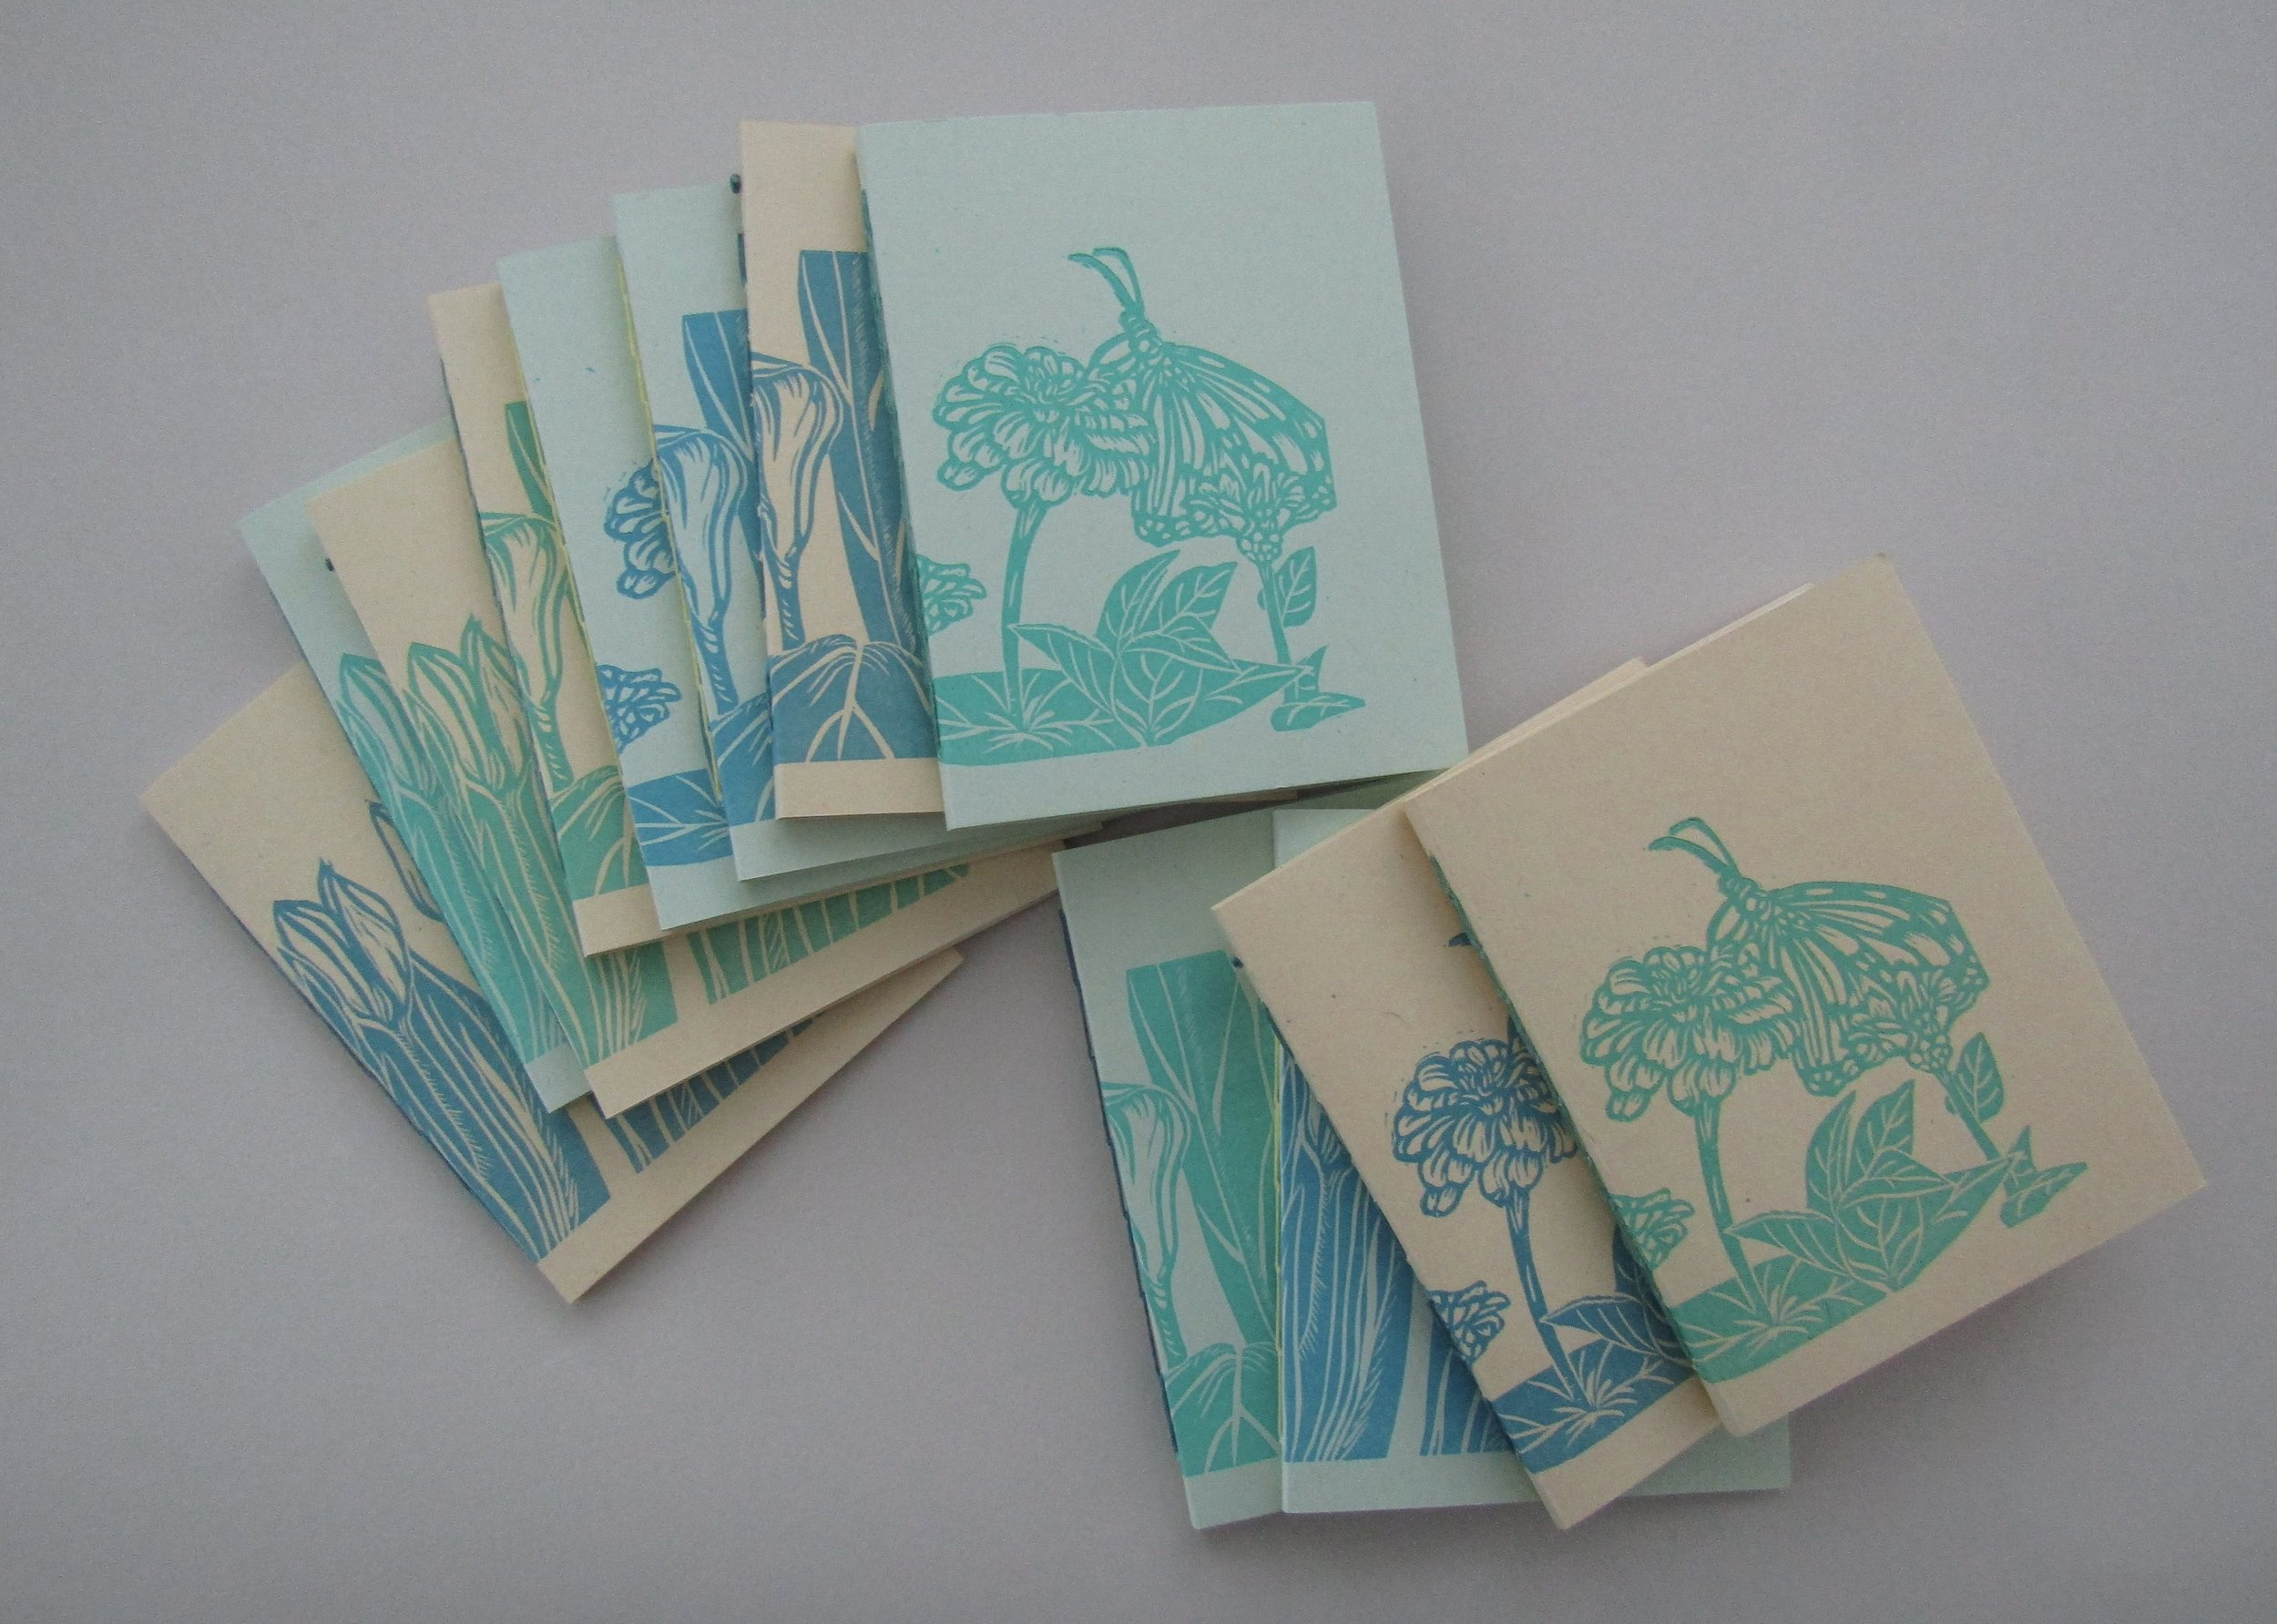 I was quite pleased with the quality of the prints on the French paper!